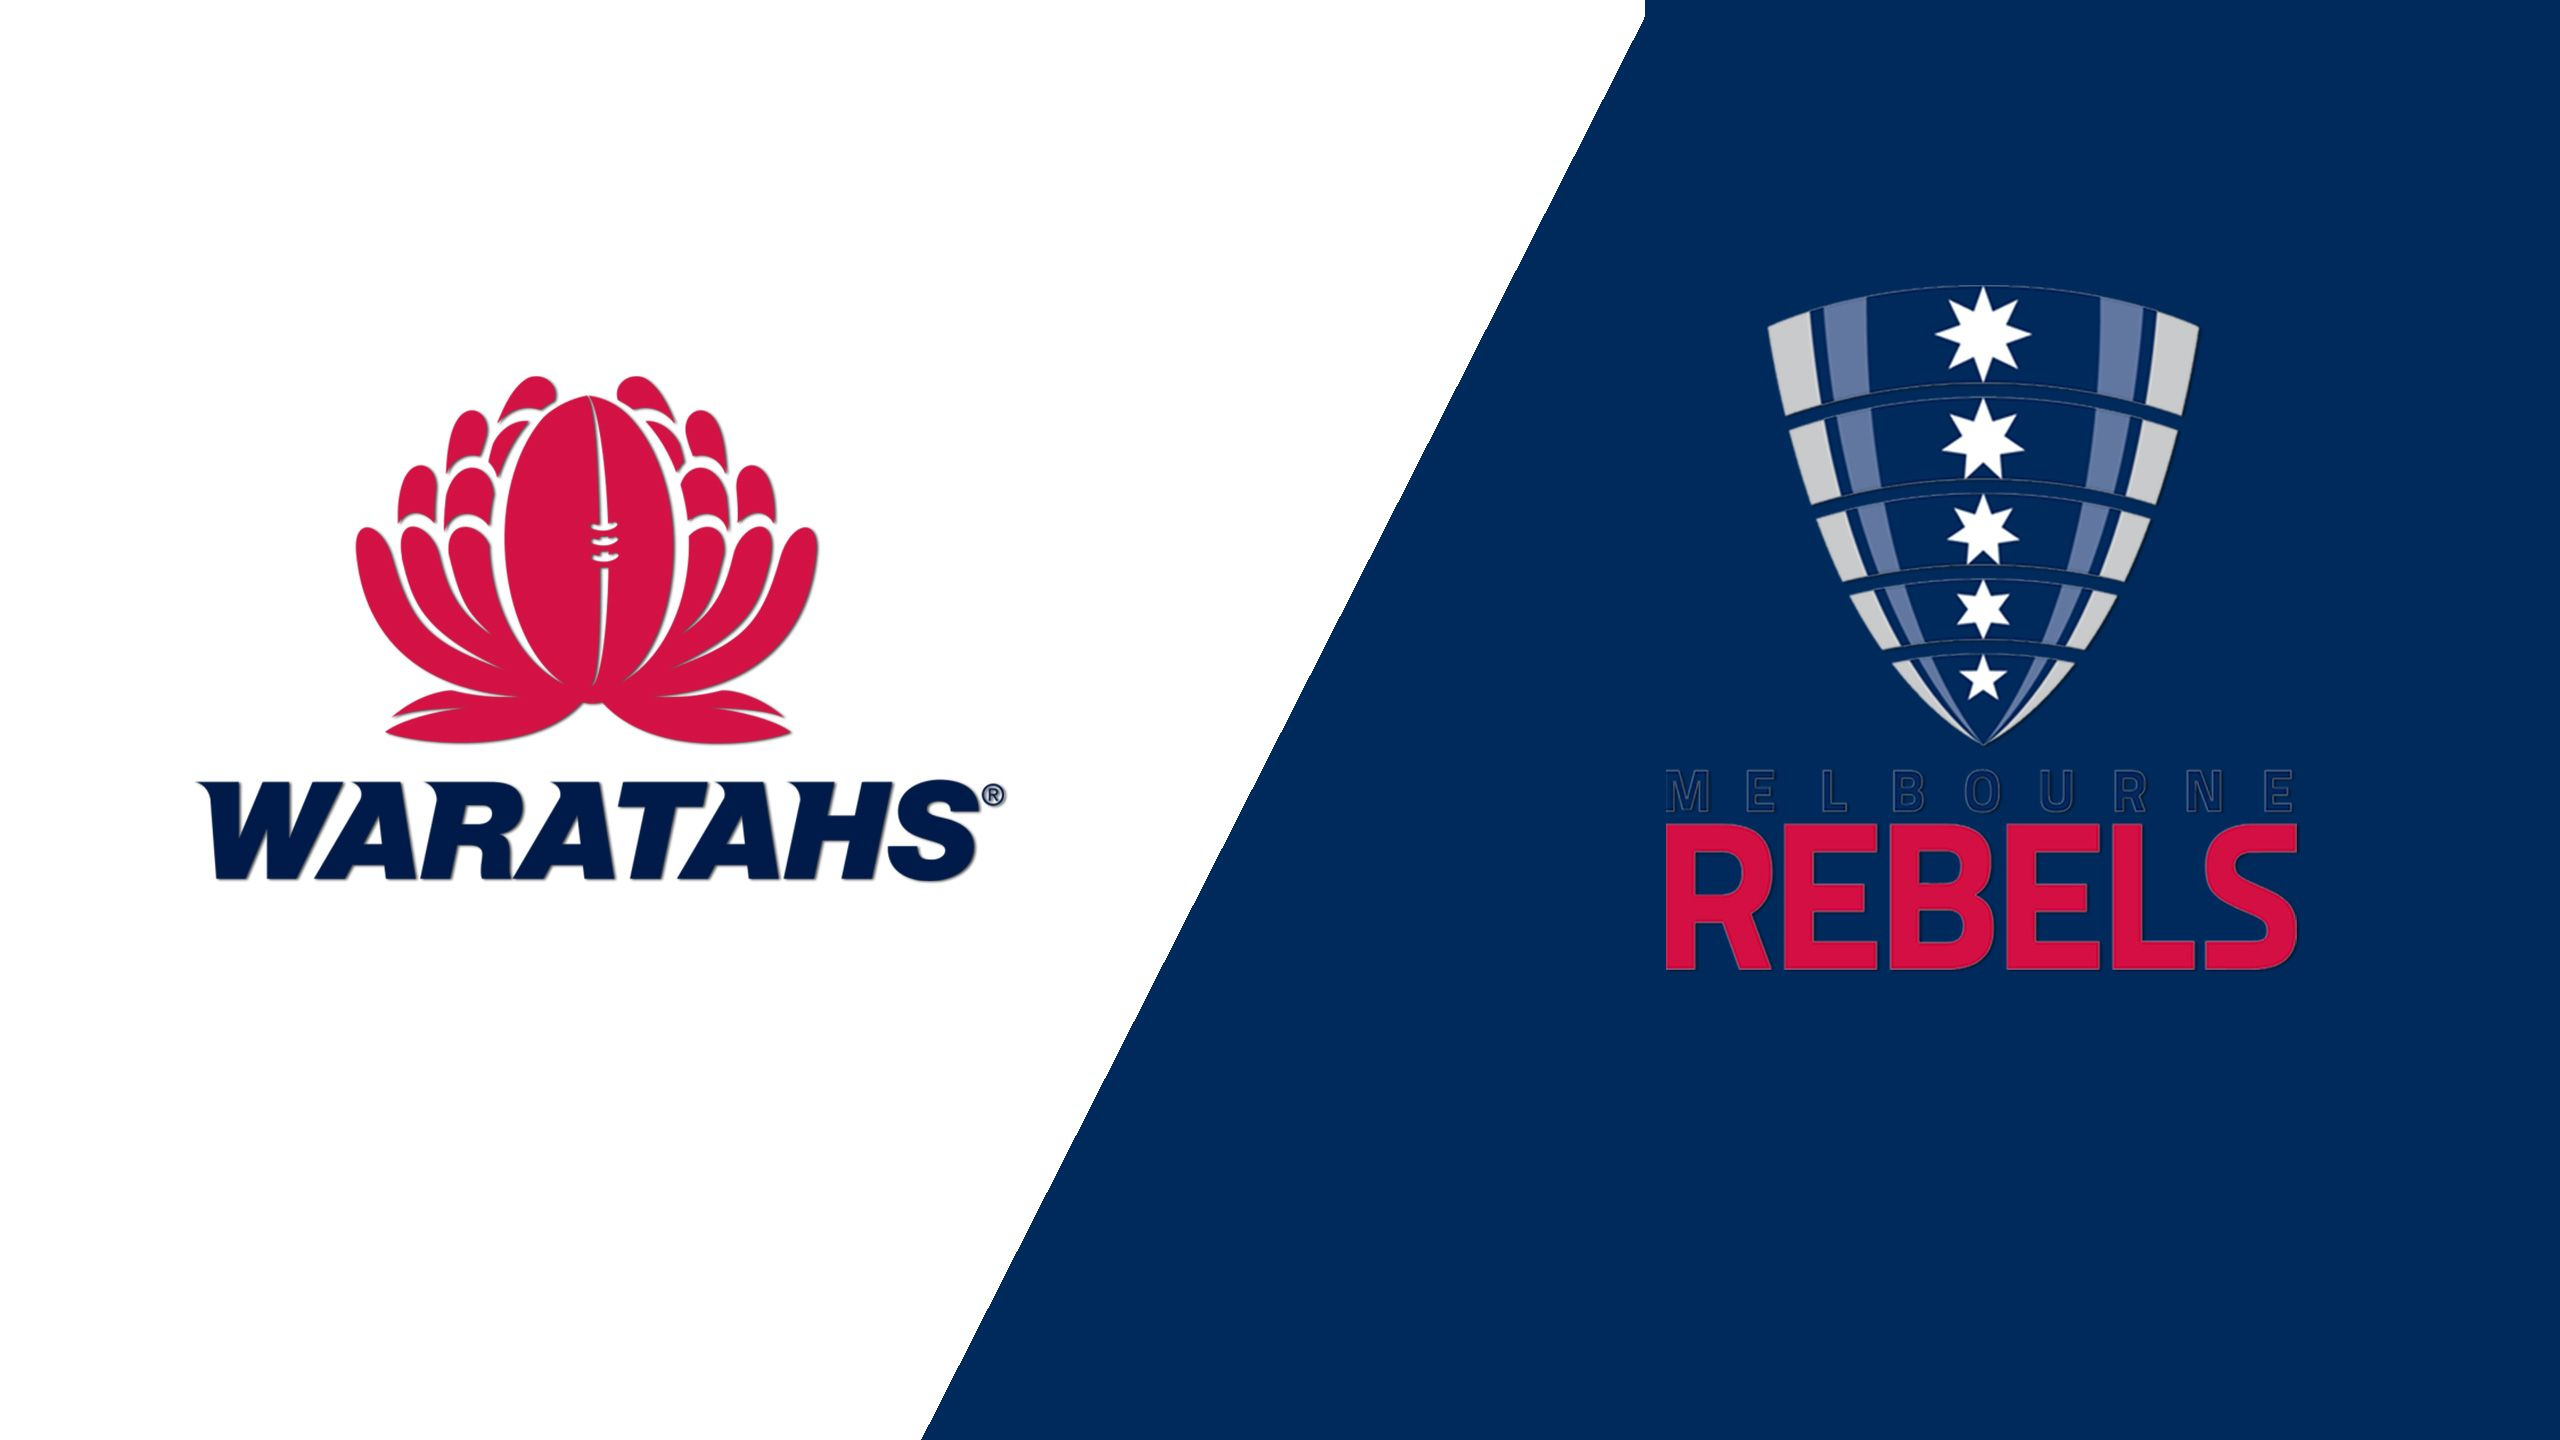 Waratahs vs. Rebels (Super Rugby)